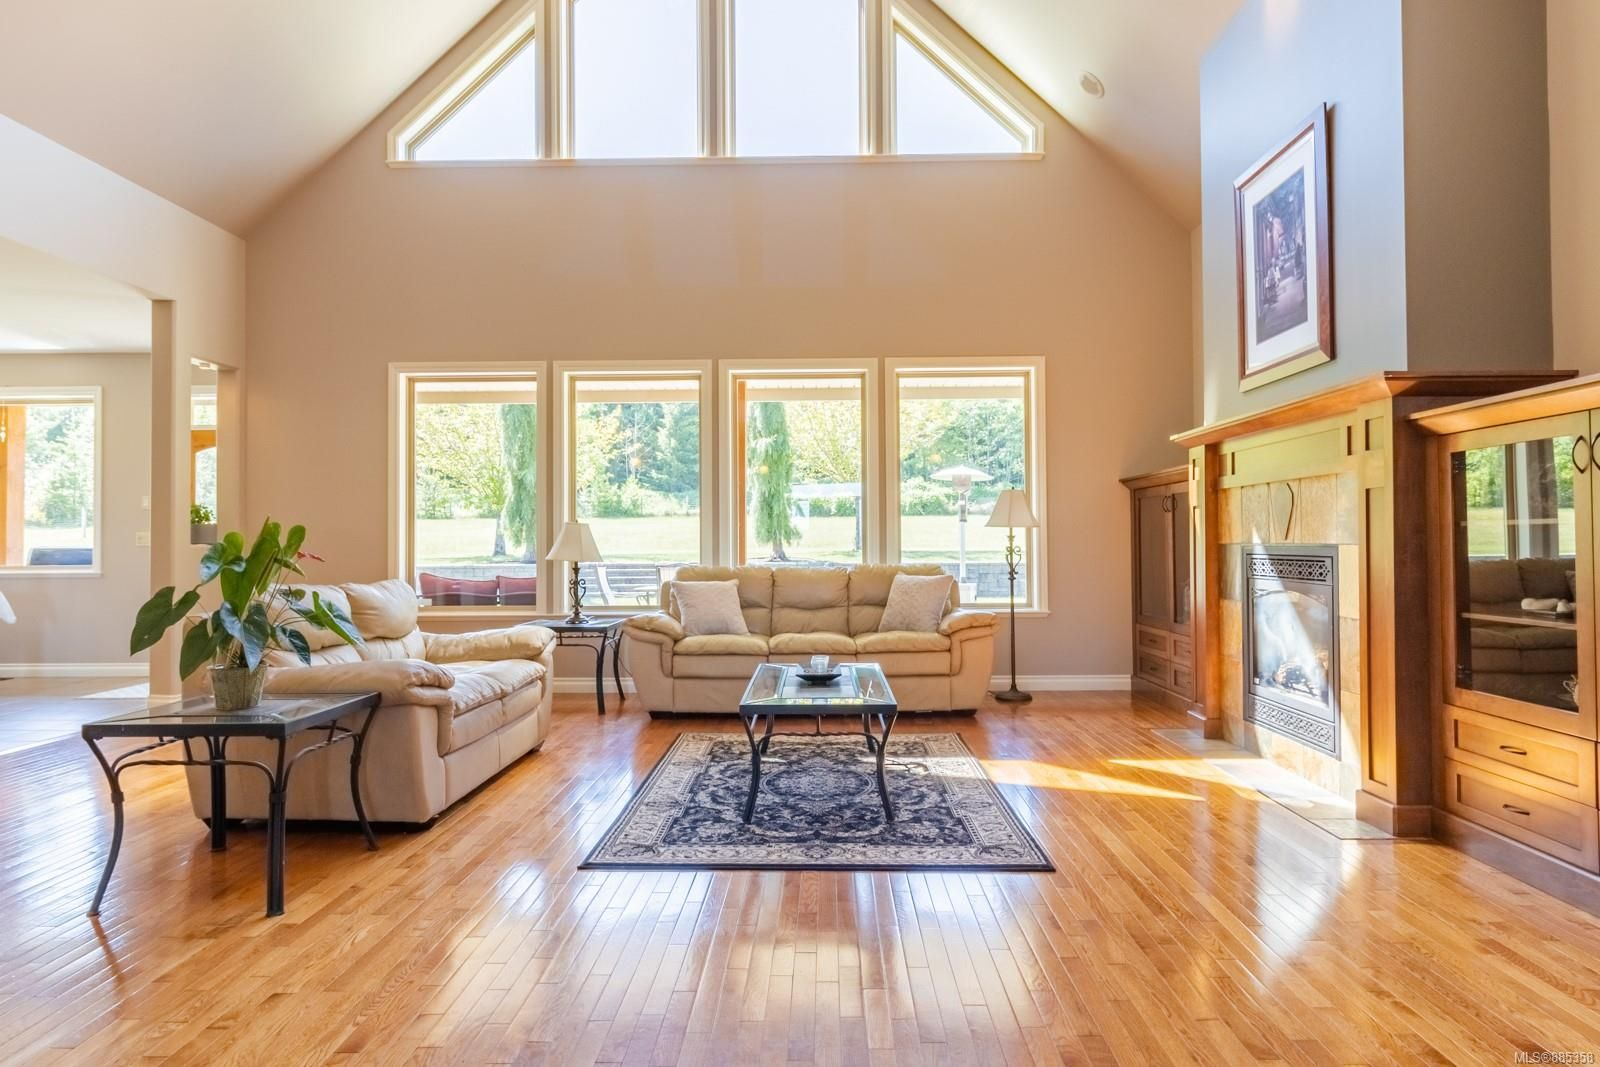 Photo 9: Photos: 2850 Peters Rd in : PQ Qualicum Beach House for sale (Parksville/Qualicum)  : MLS®# 885358